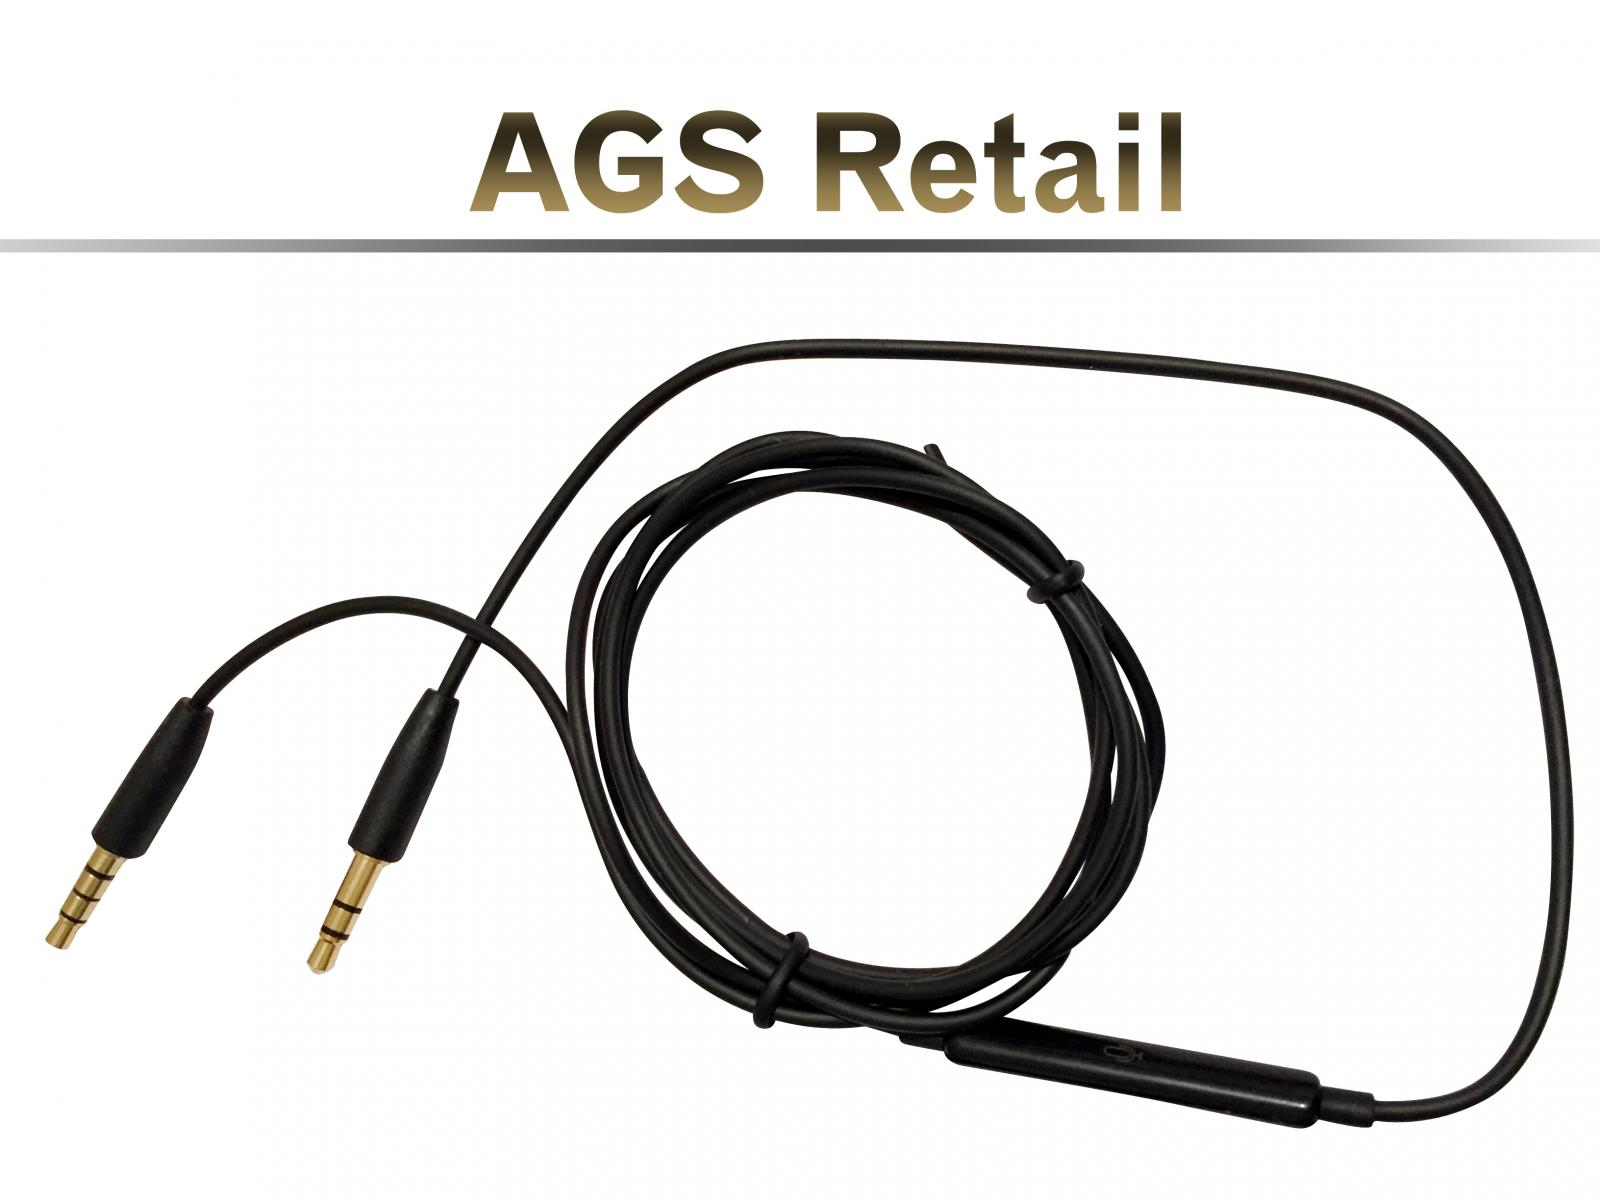 Car Battery Nokia furthermore Cell Phone Parts as well Ipad 2 Headphone Jack Replacement in addition Philips Health Care together with New Phone By Lg. on lg bluetooth headset wiring diagram